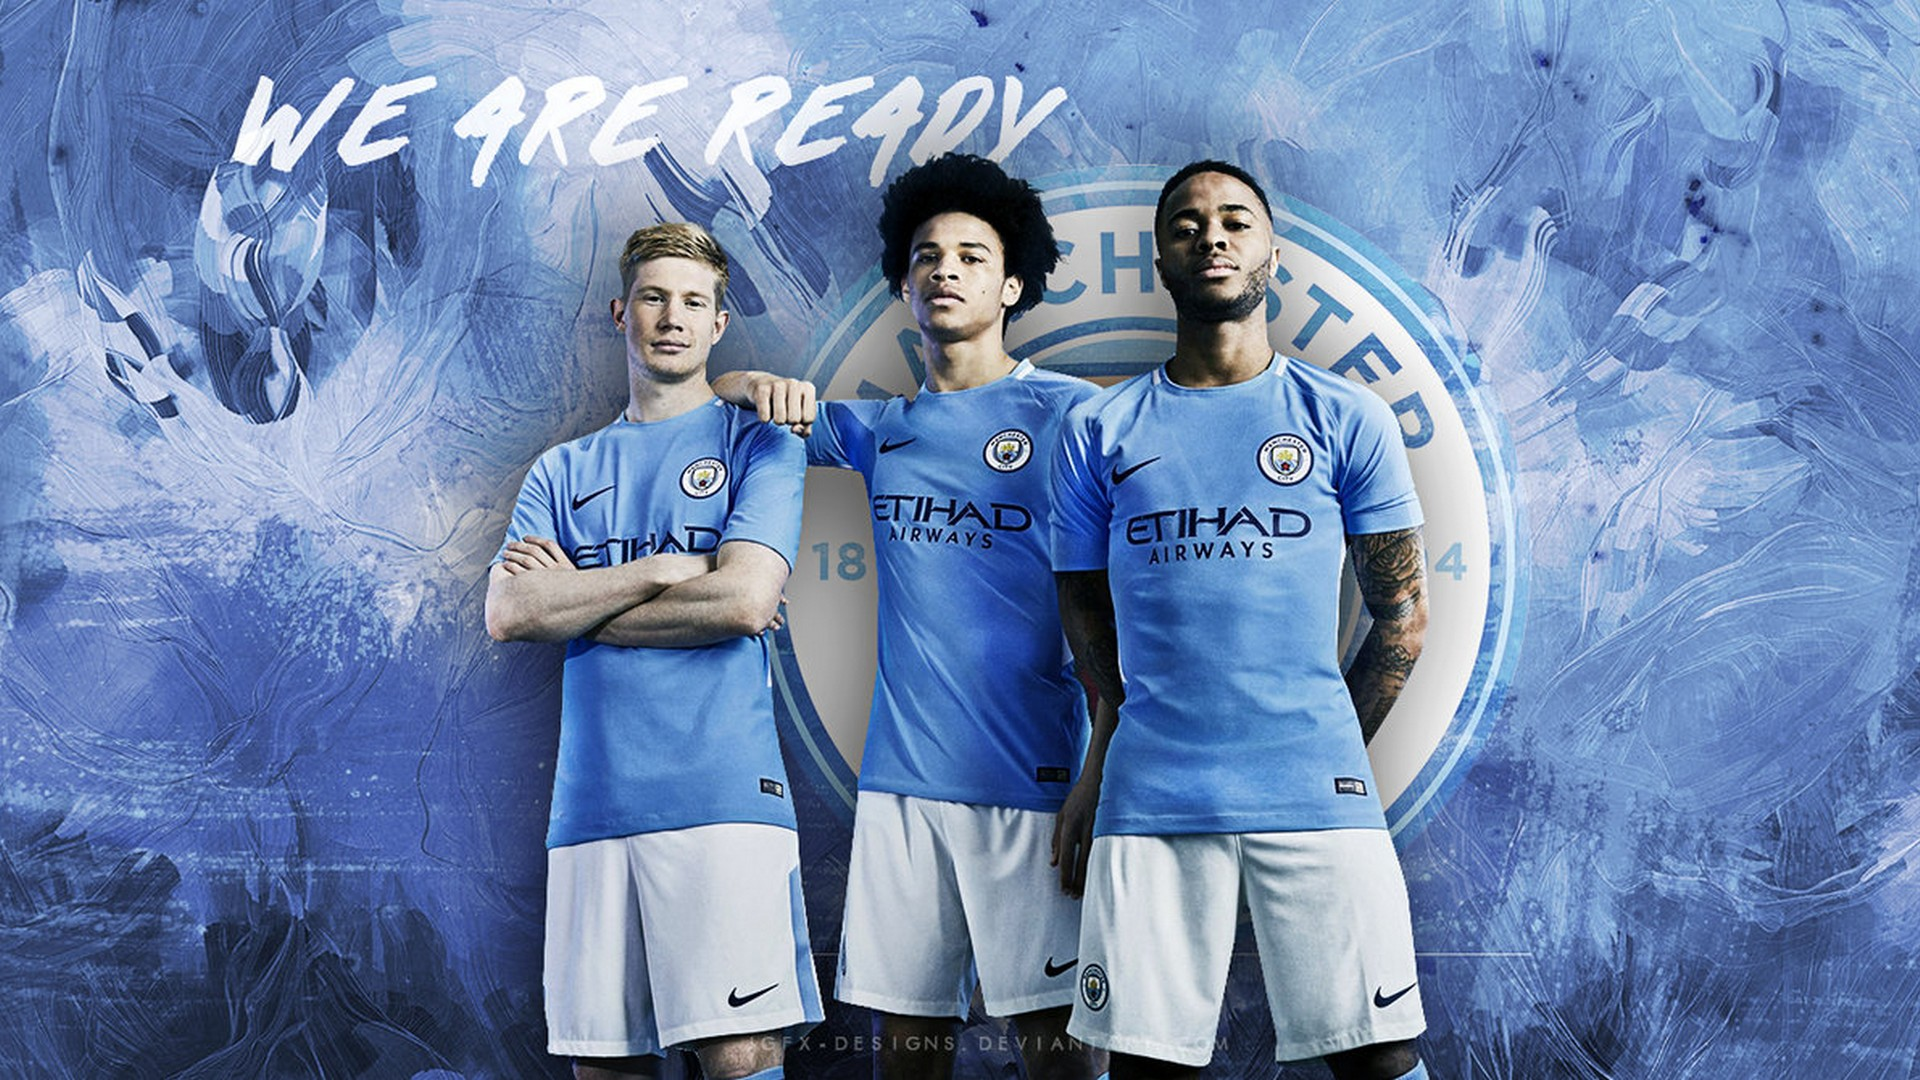 Manchester City Wallpaper For Mac Backgrounds 2019 Football 1920x1080